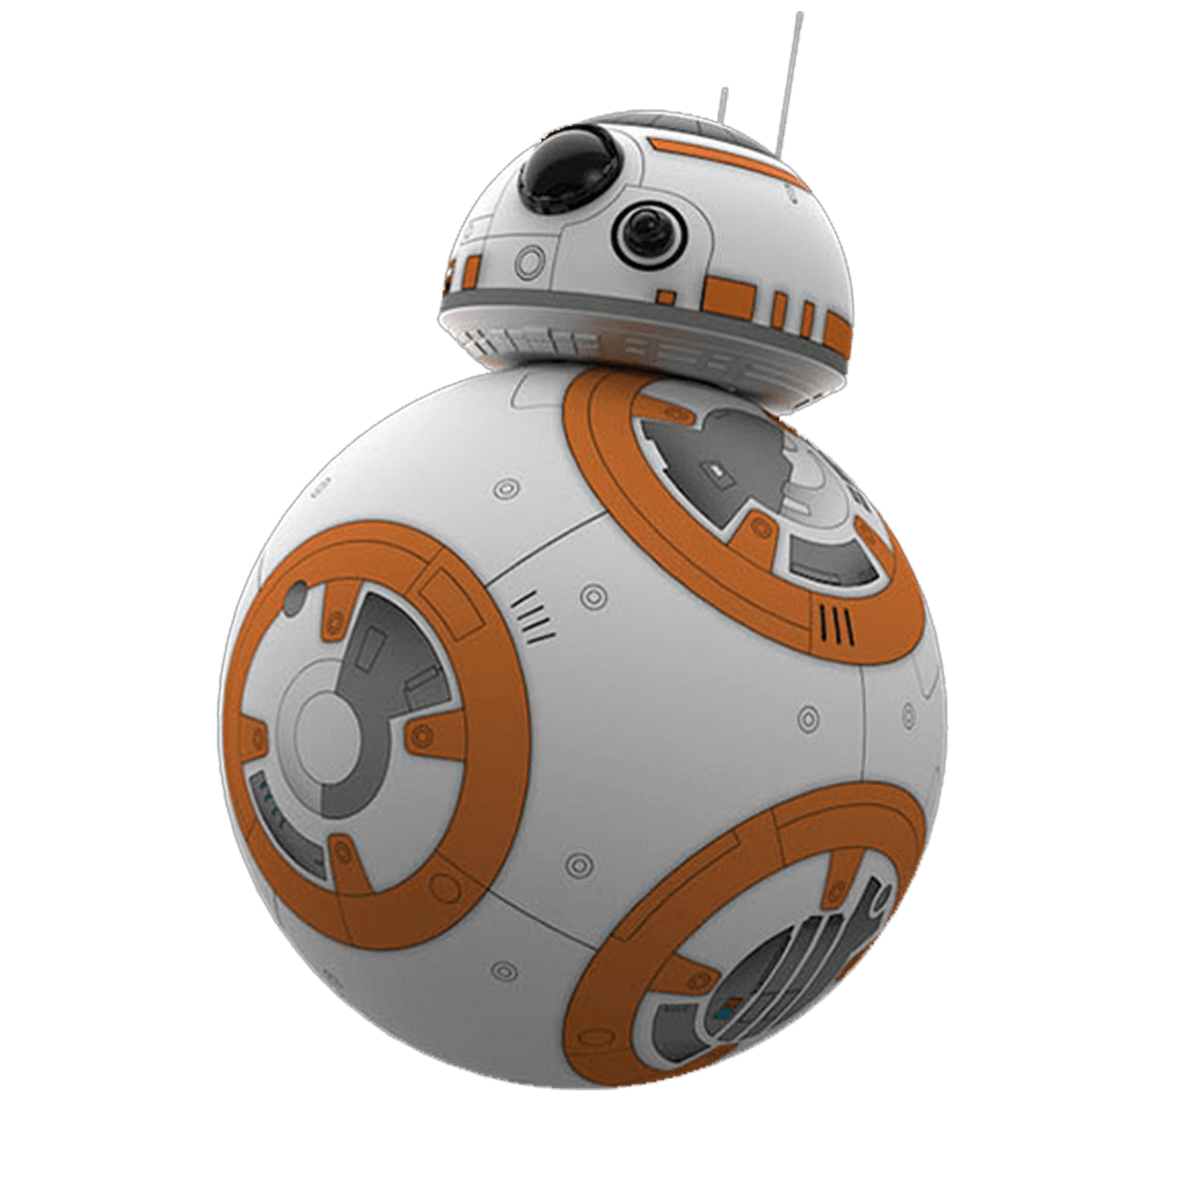 Bb star wars png. Starwars clipart transparent background